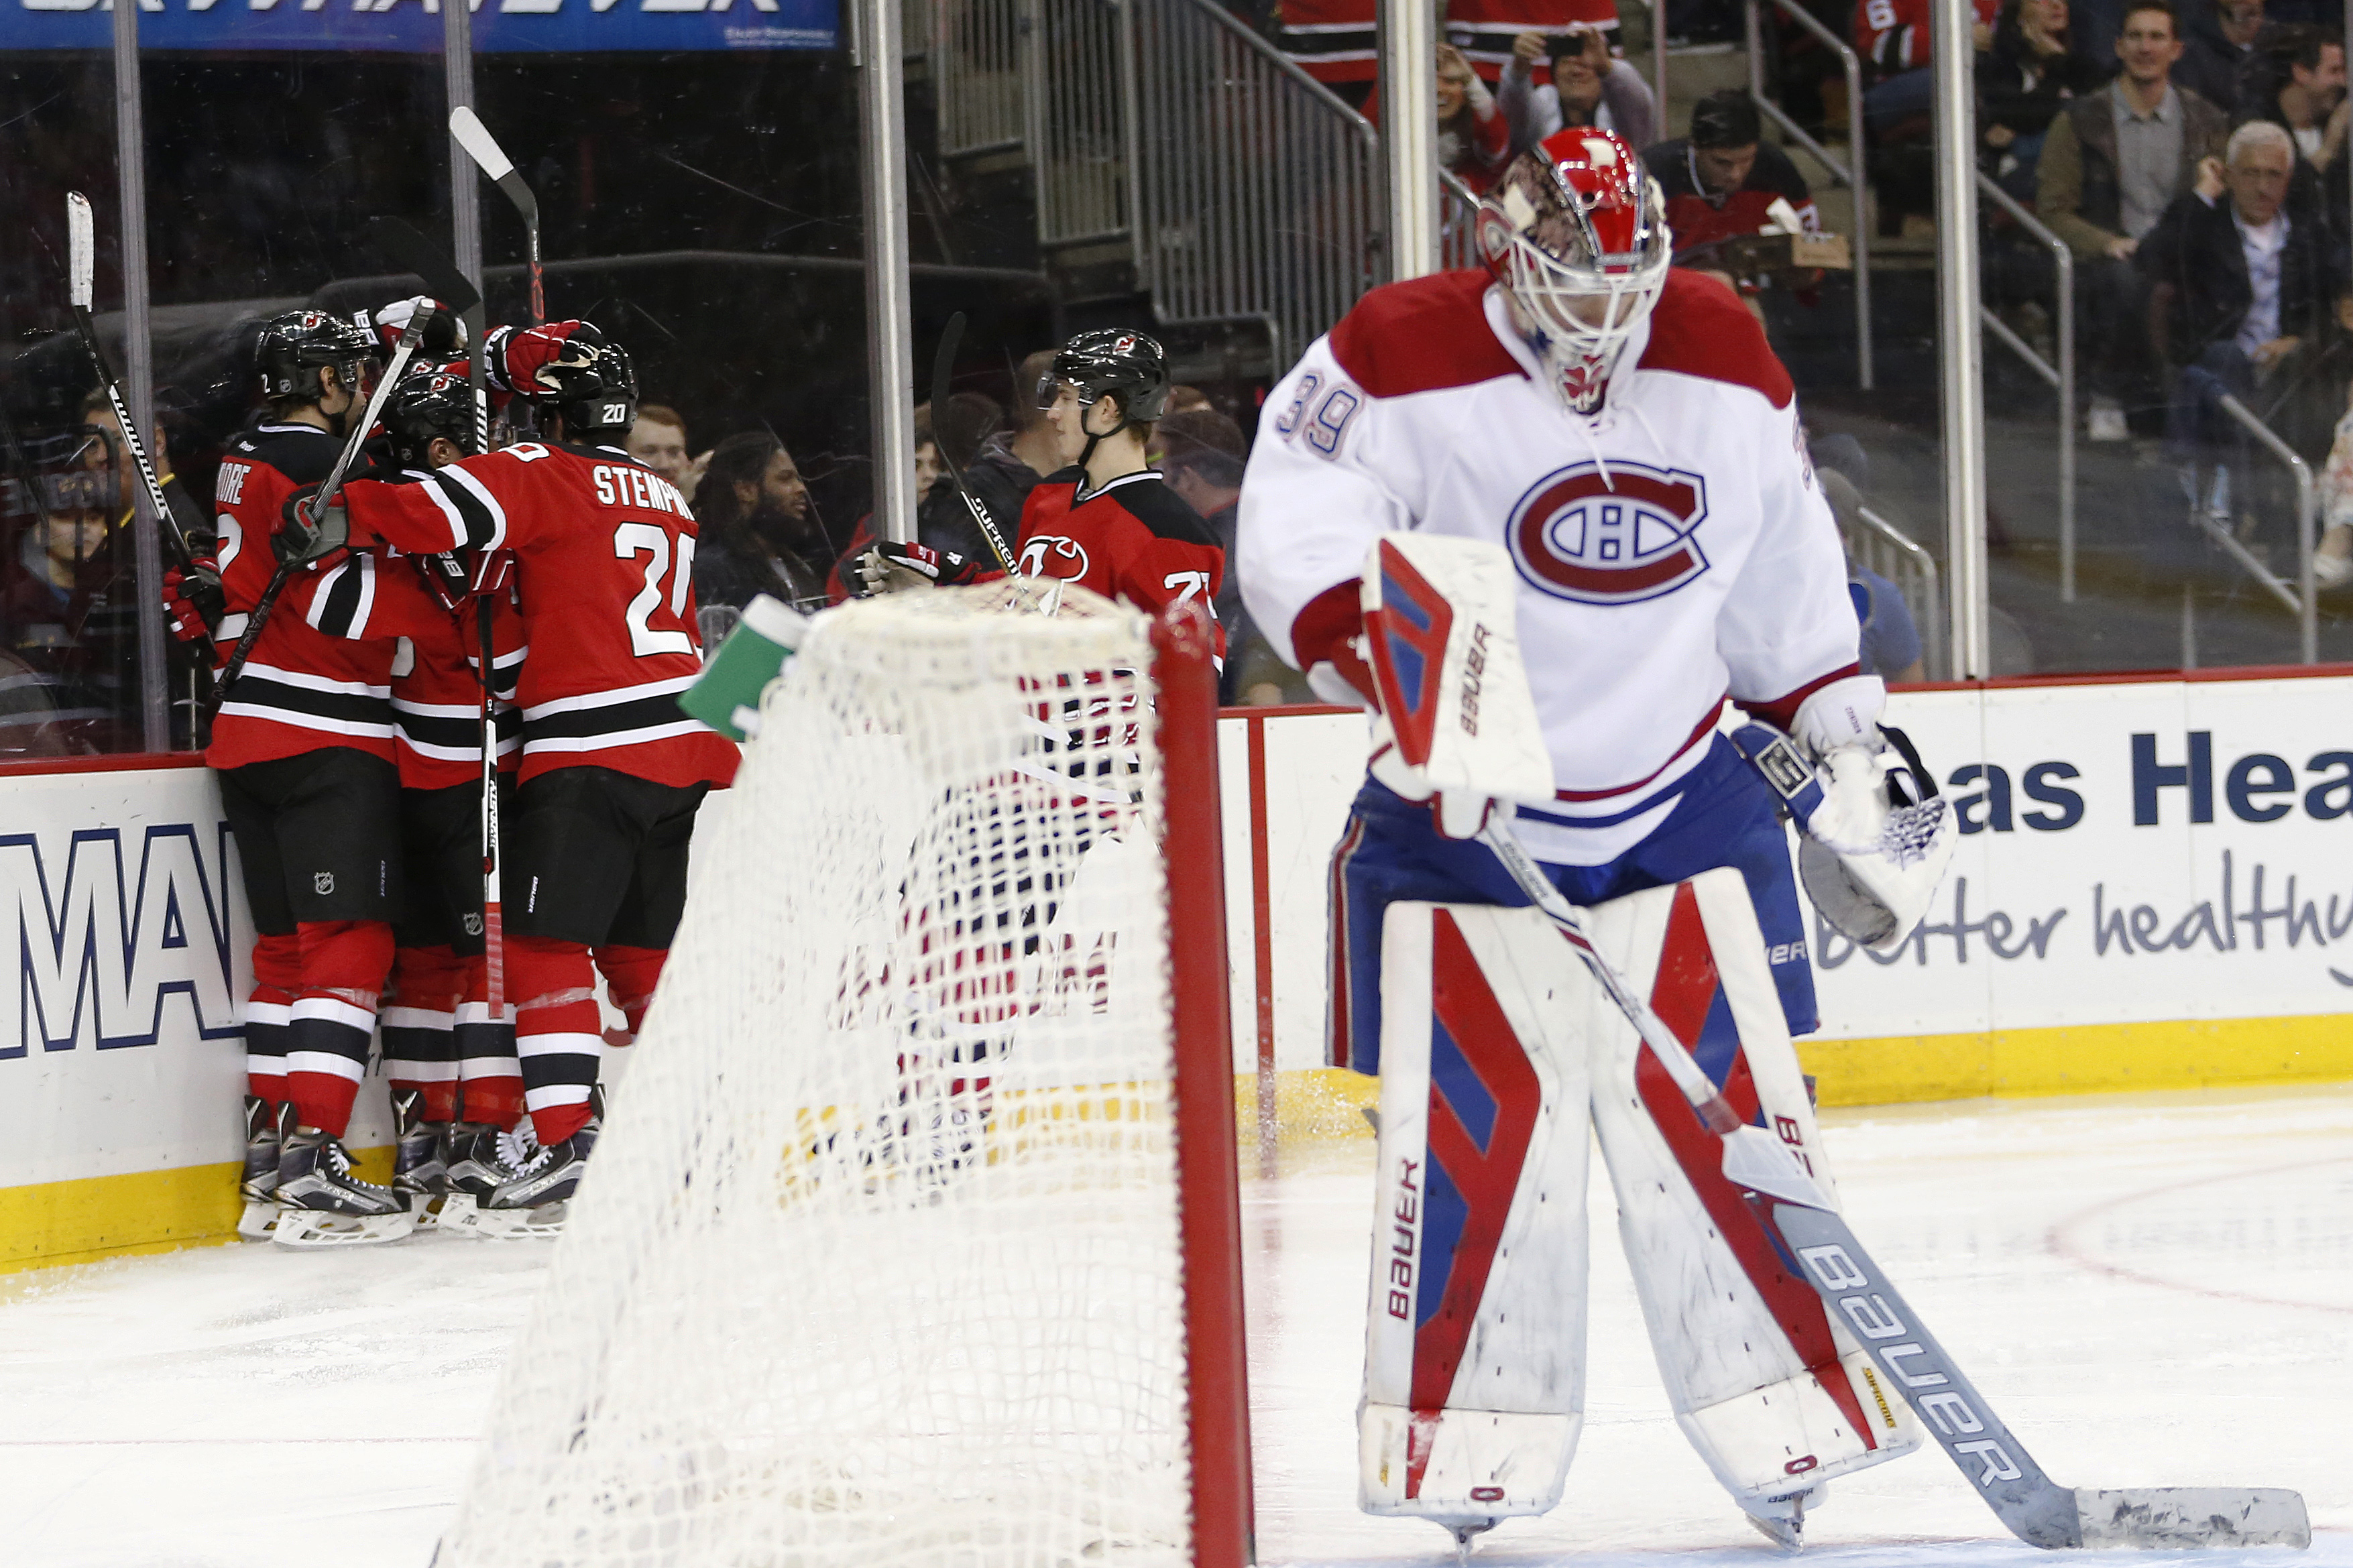 New Jersey Devils, left, celebrate after Adam Henrique scored a goal on Montreal Canadiens goalie Mike Condon, foreground, during the second period of an NHL hockey game, Friday, Nov. 27, 2015, in Newark, N.J. (AP Photo/Julio Cortez)